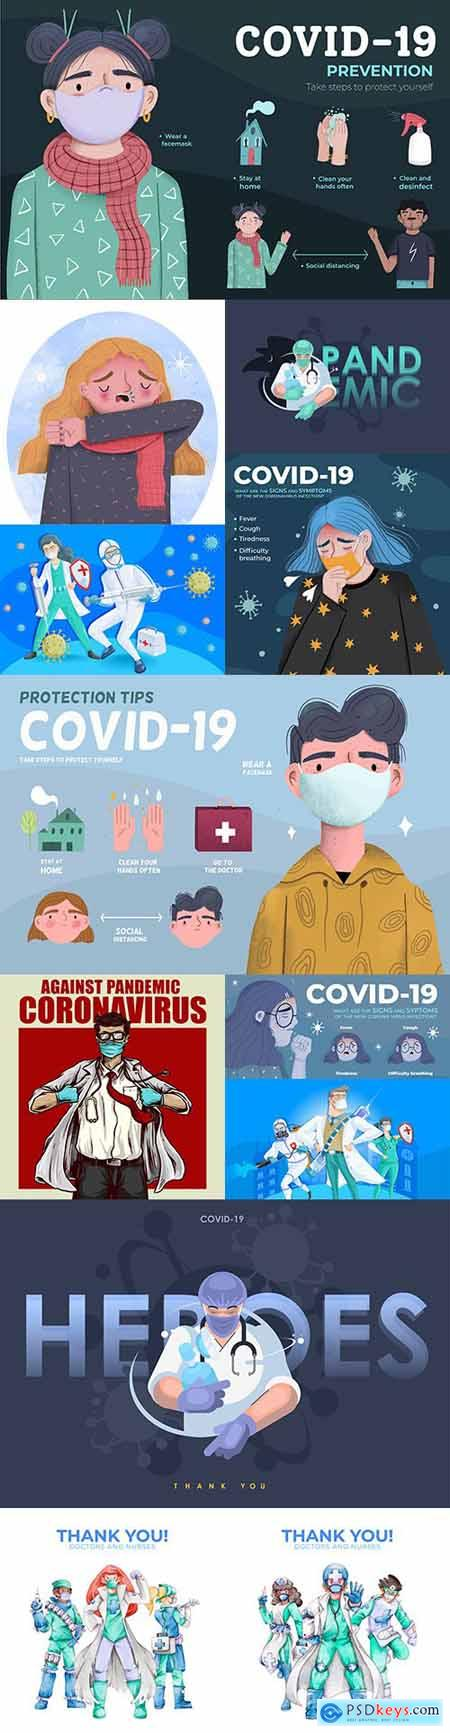 Prevention and protection against coronavirus collection of illustrations